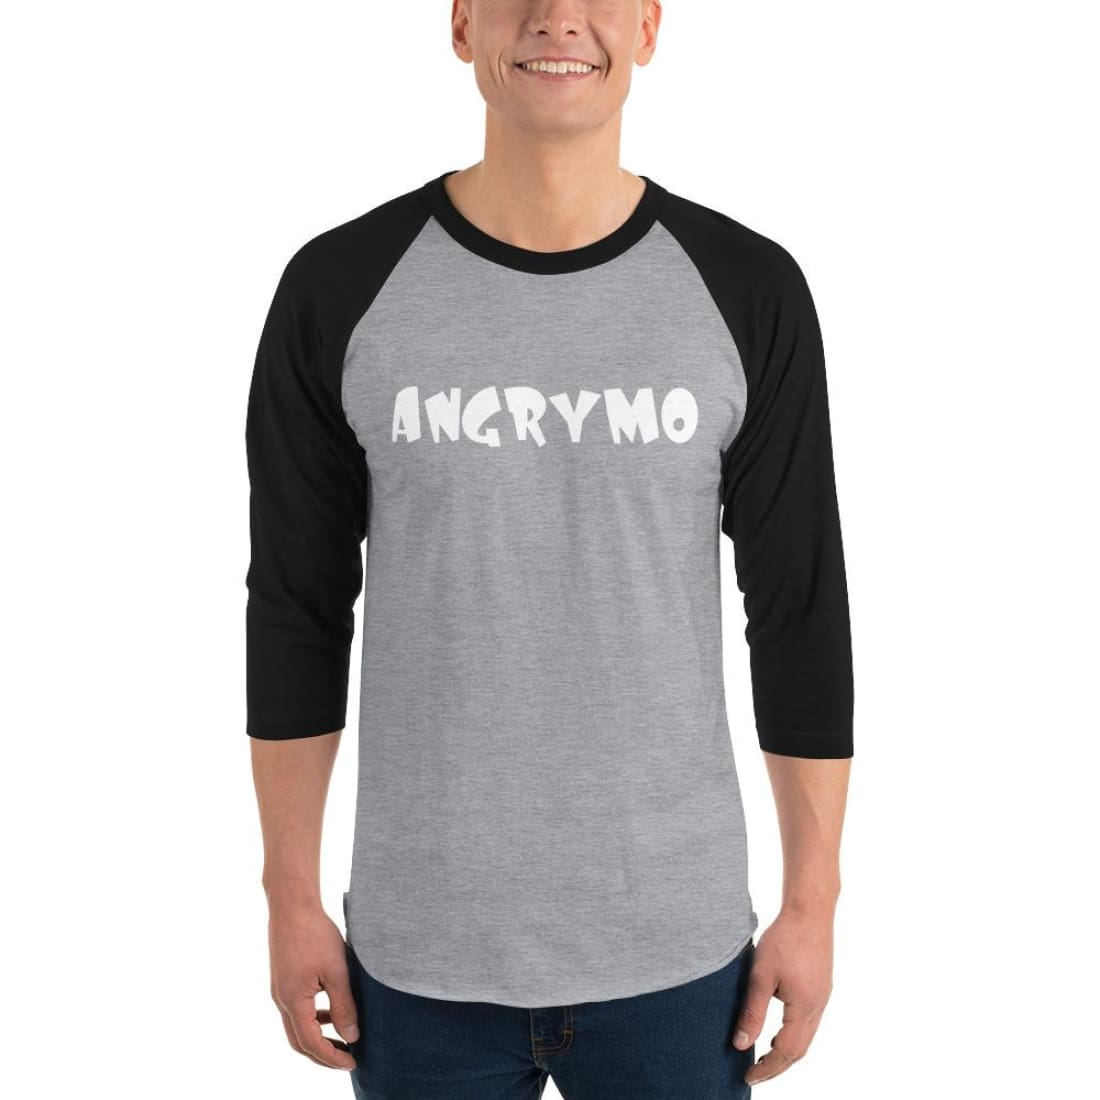 Angrymo 3/4 Sleeve Raglan Shirt - Heather Grey/black / Xs